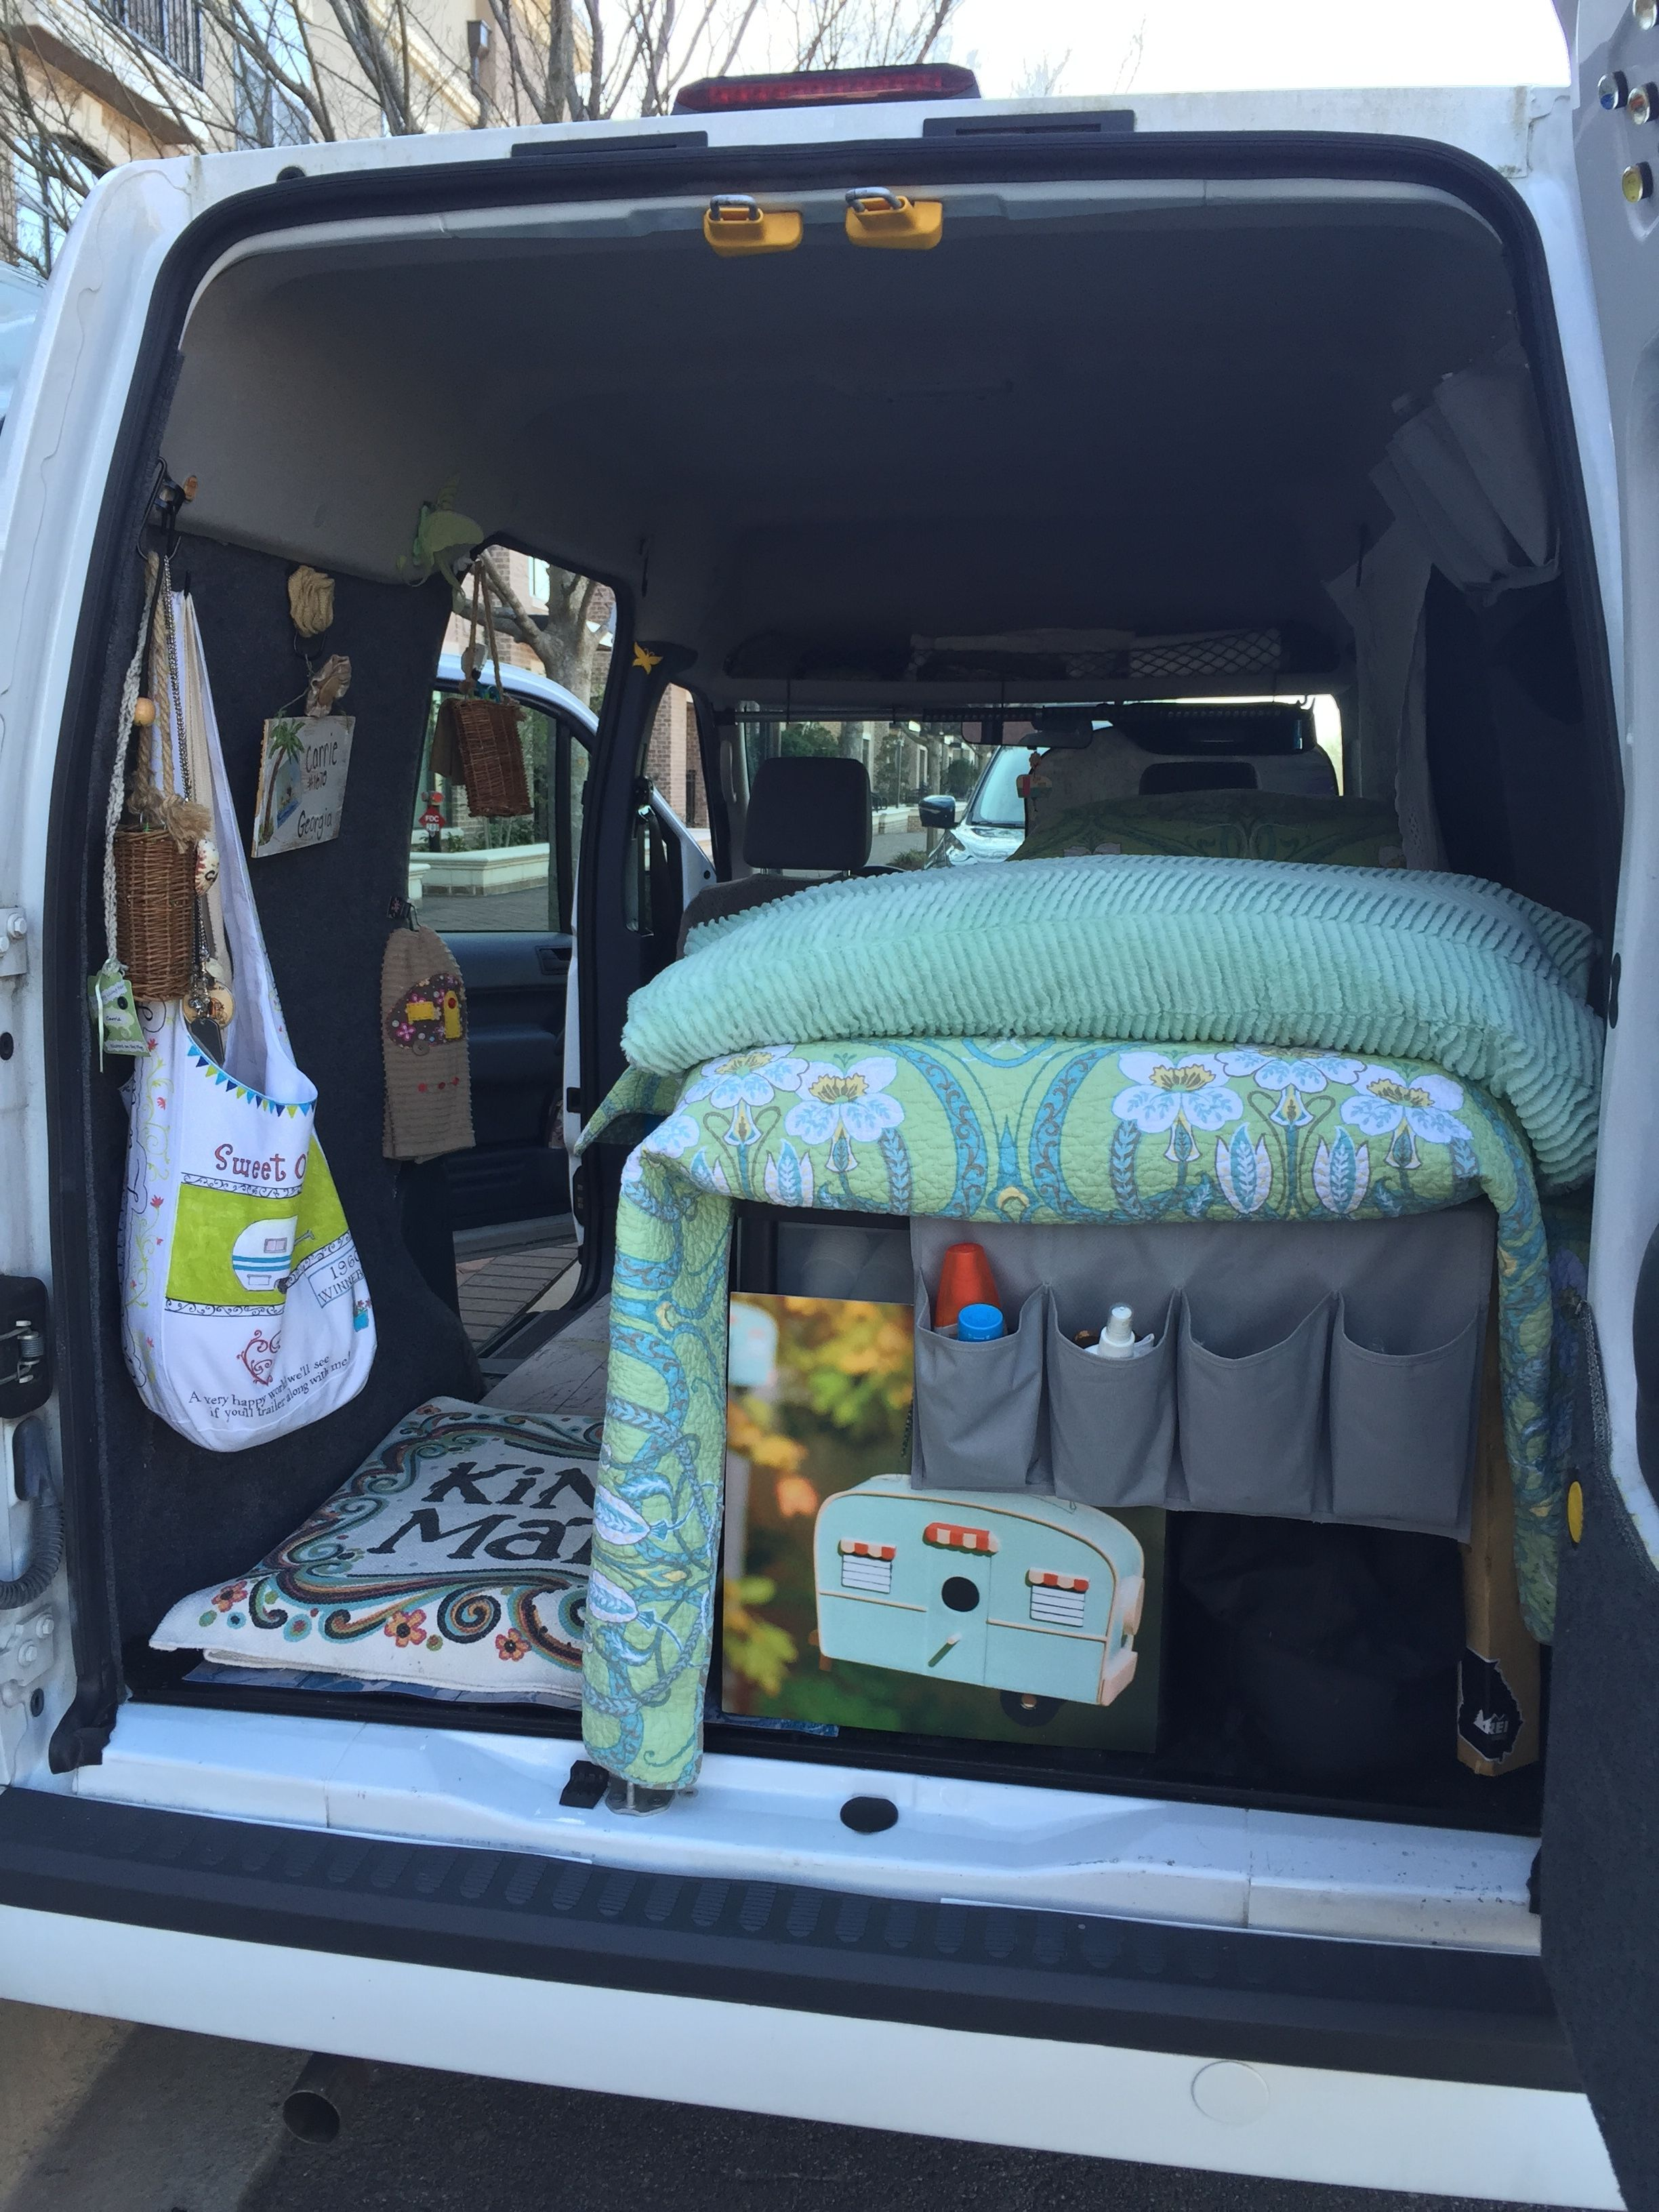 Baby B The Glamper Cramper Van 2010 Ford Transit Connect Gal Campervan Less Is More Micr Ford Transit Camper Ford Transit Connect Camper Ford Transit